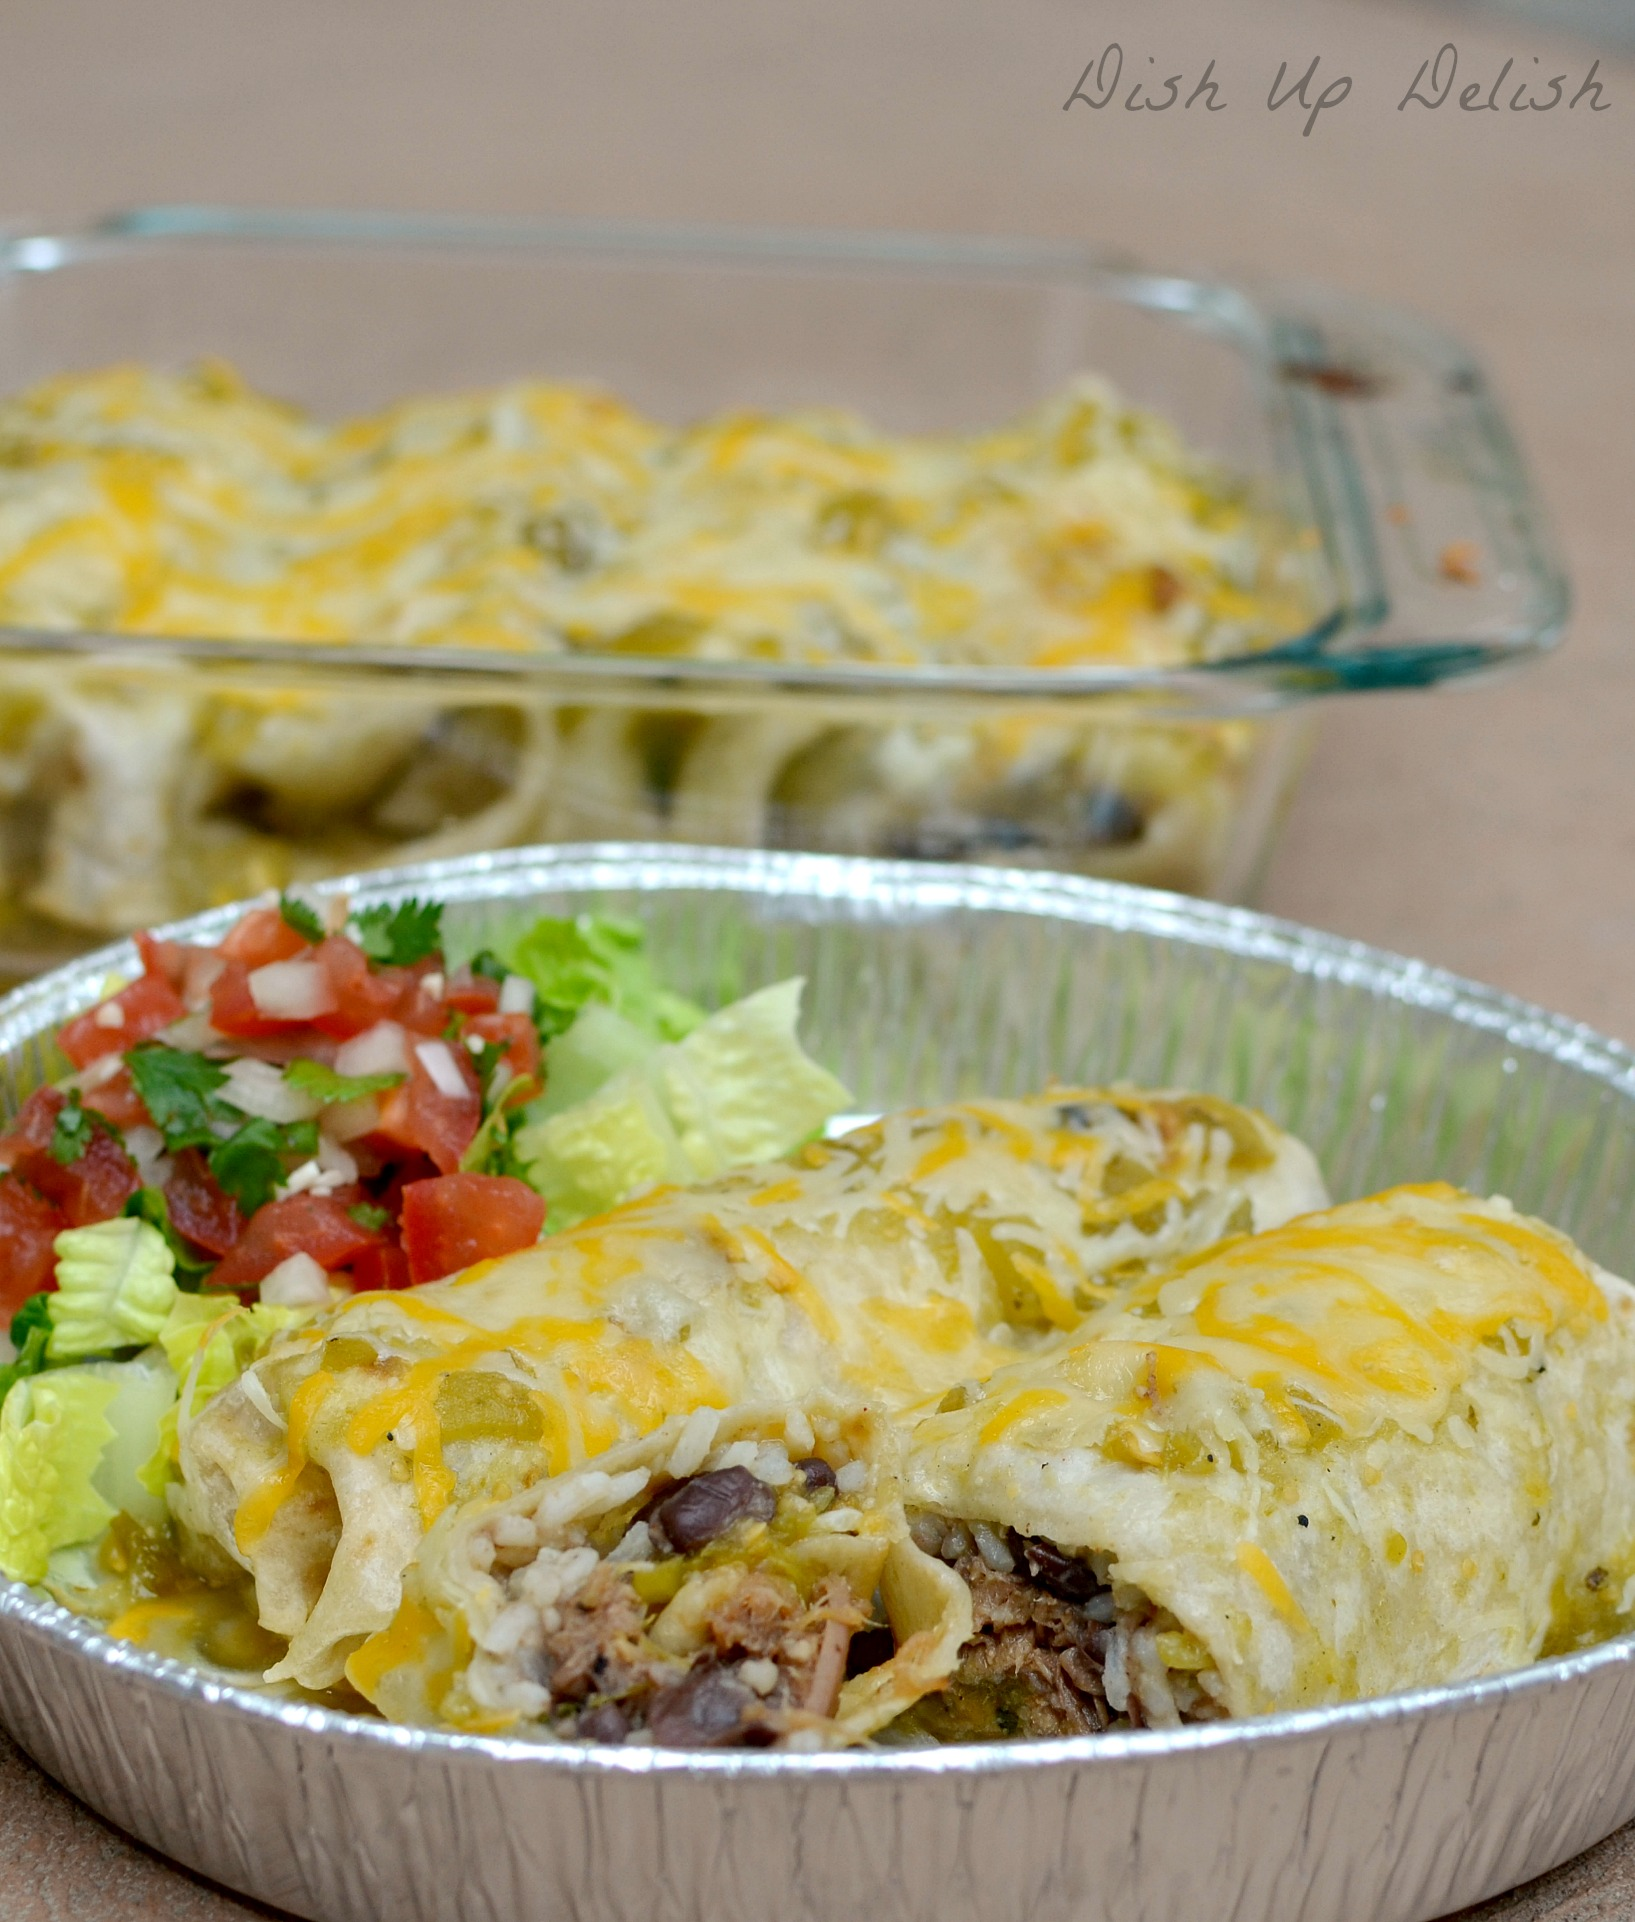 Sweet Pork Smothered Burrito from Dish Up Delish